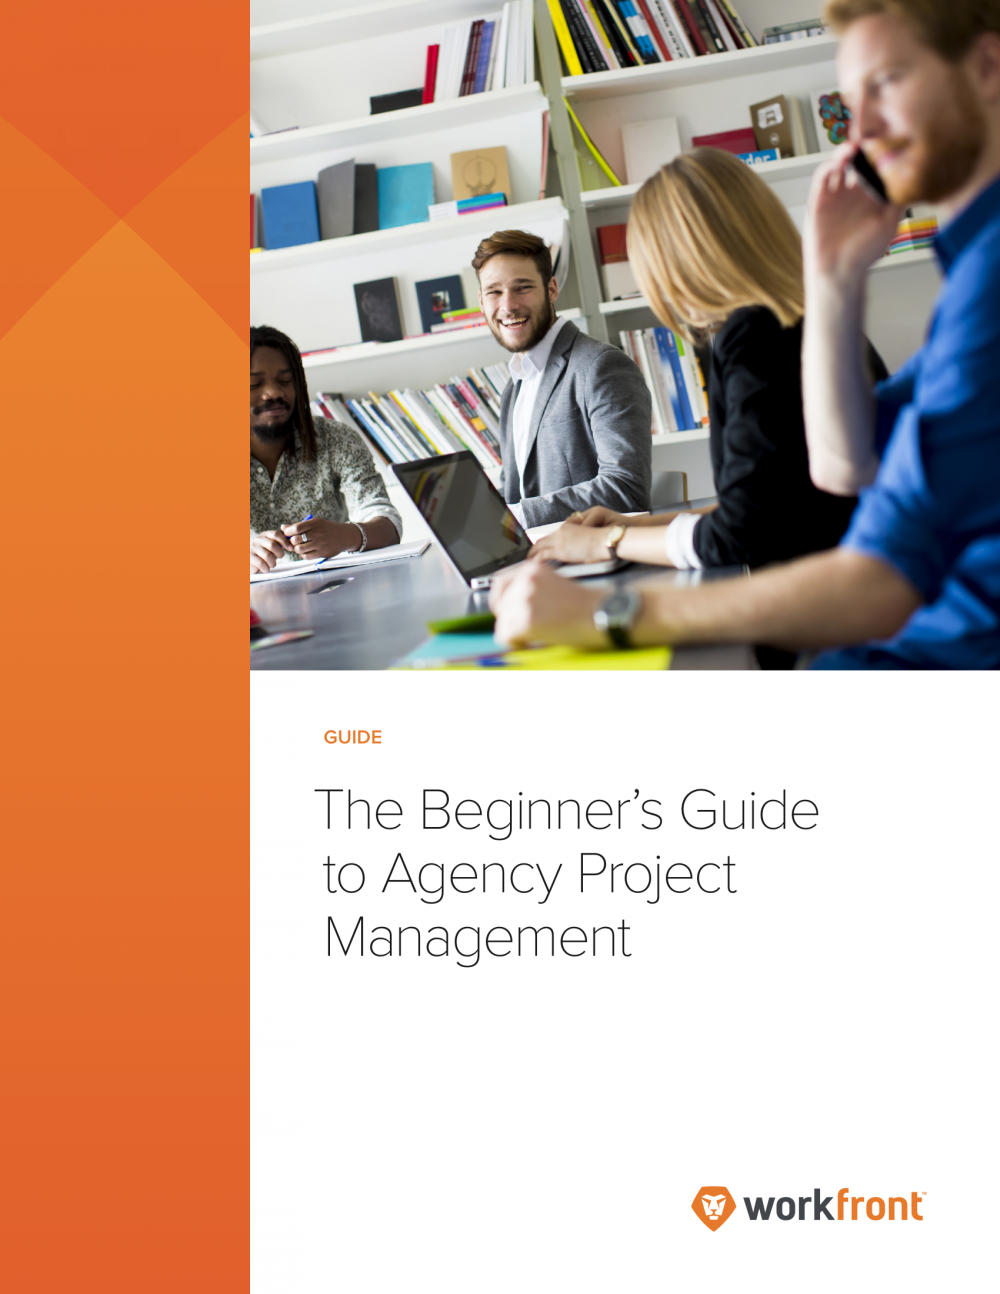 The Beginner's Guide to Agency Project Management